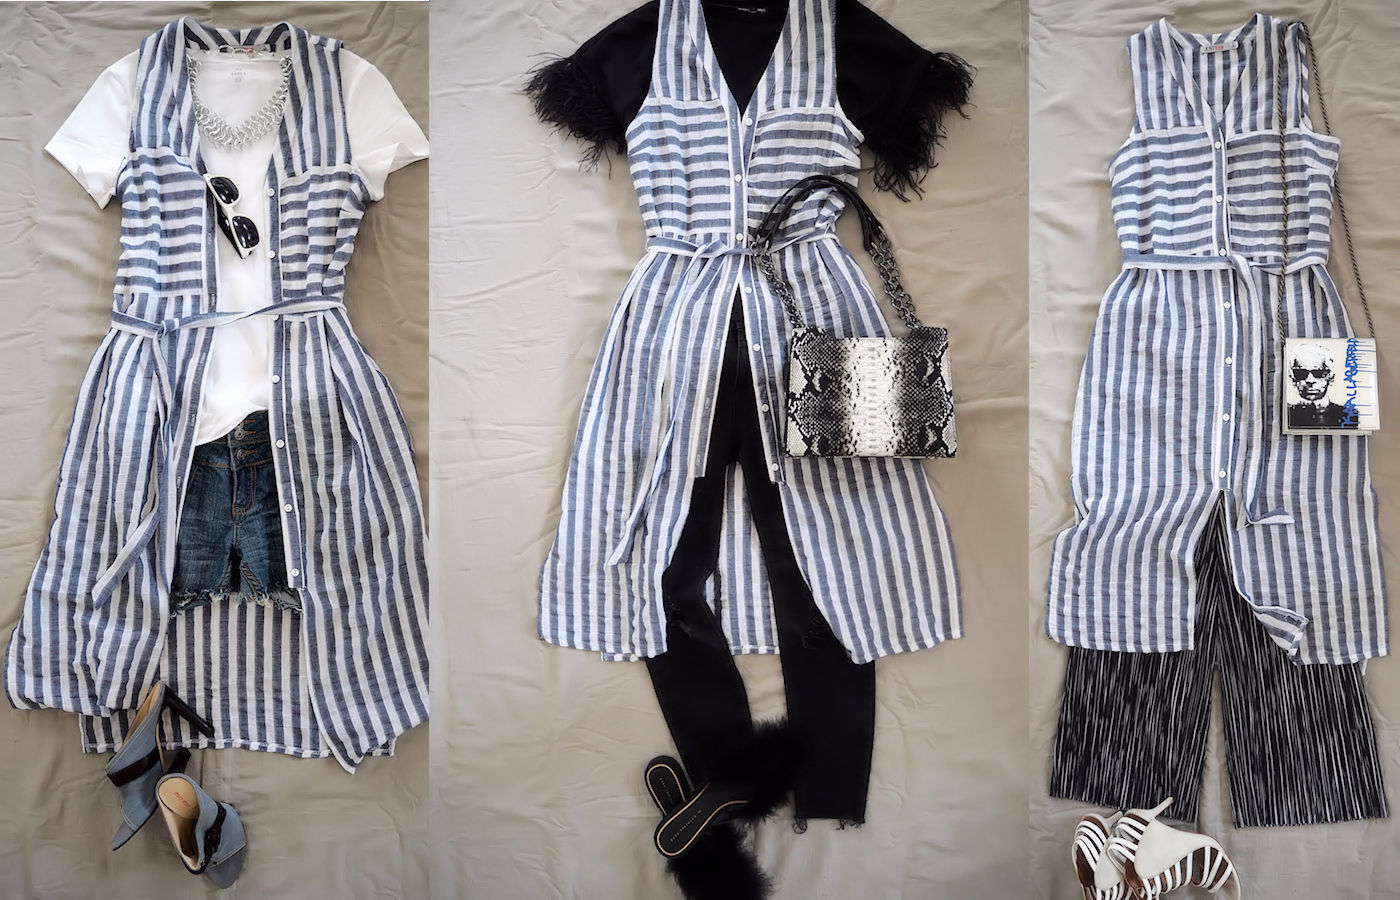 Just-take-a-look-berlin - Stylebook - How To Style A Vest Dress